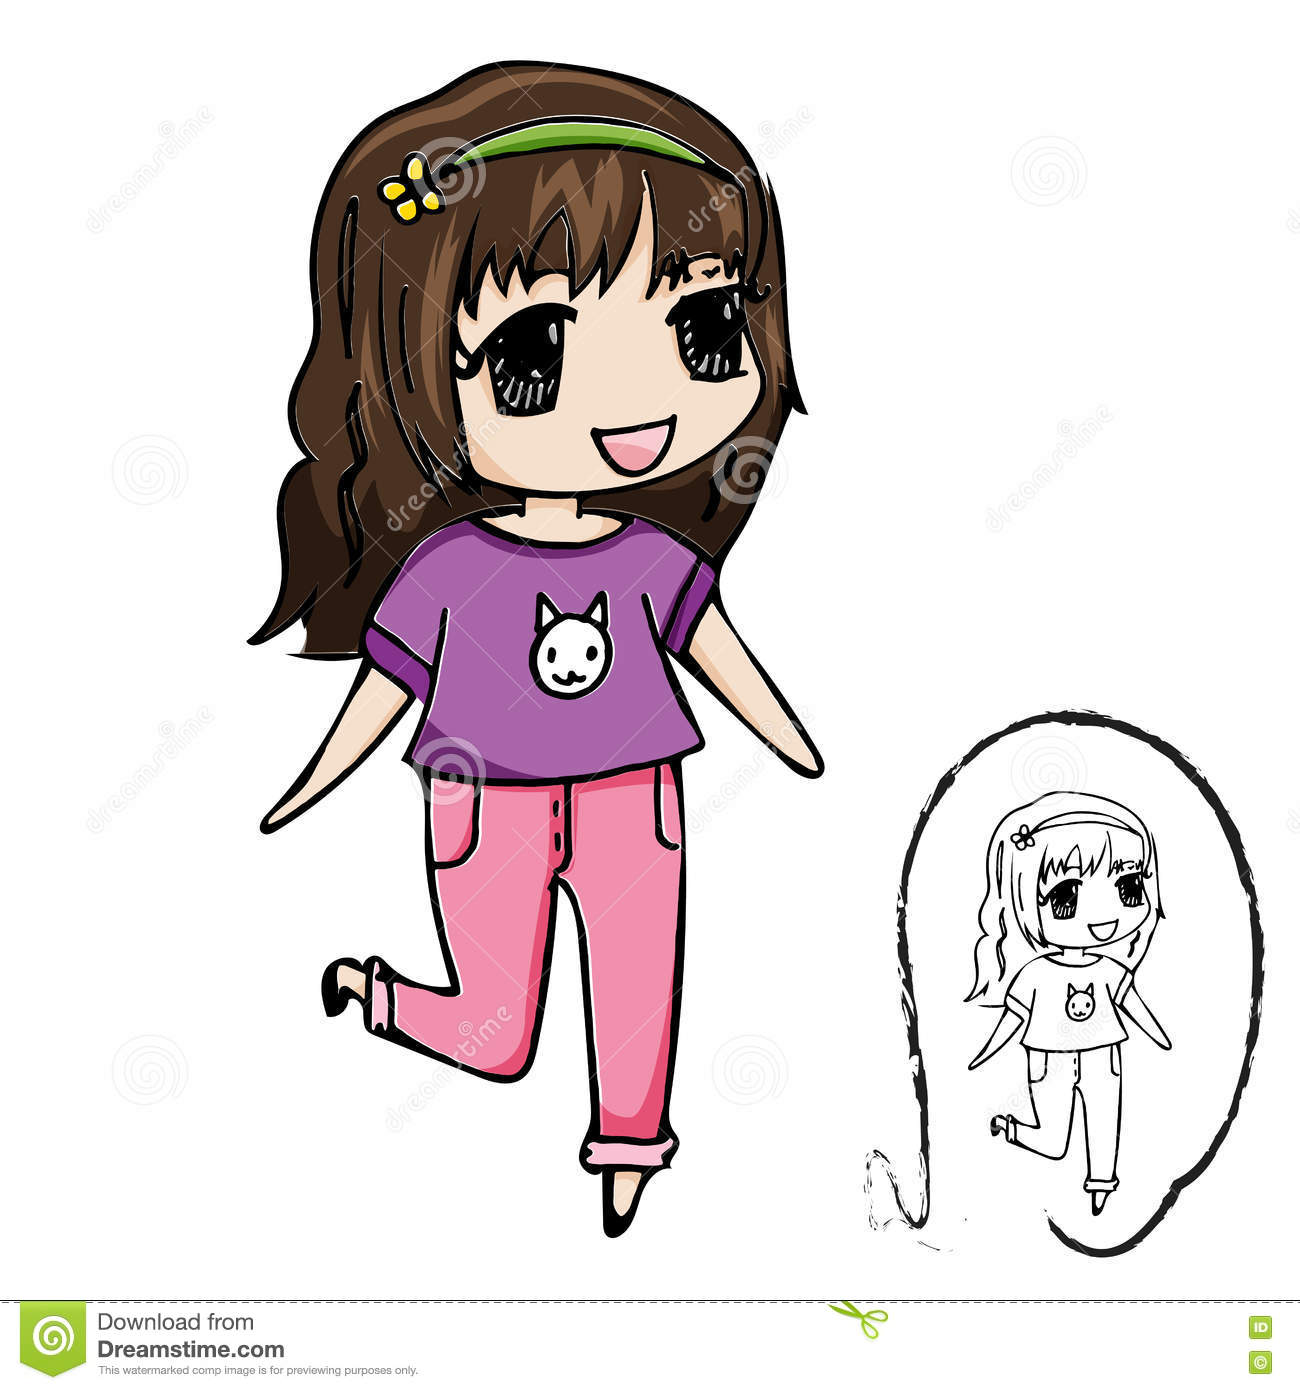 Cute girl cartoon character with black line drawing